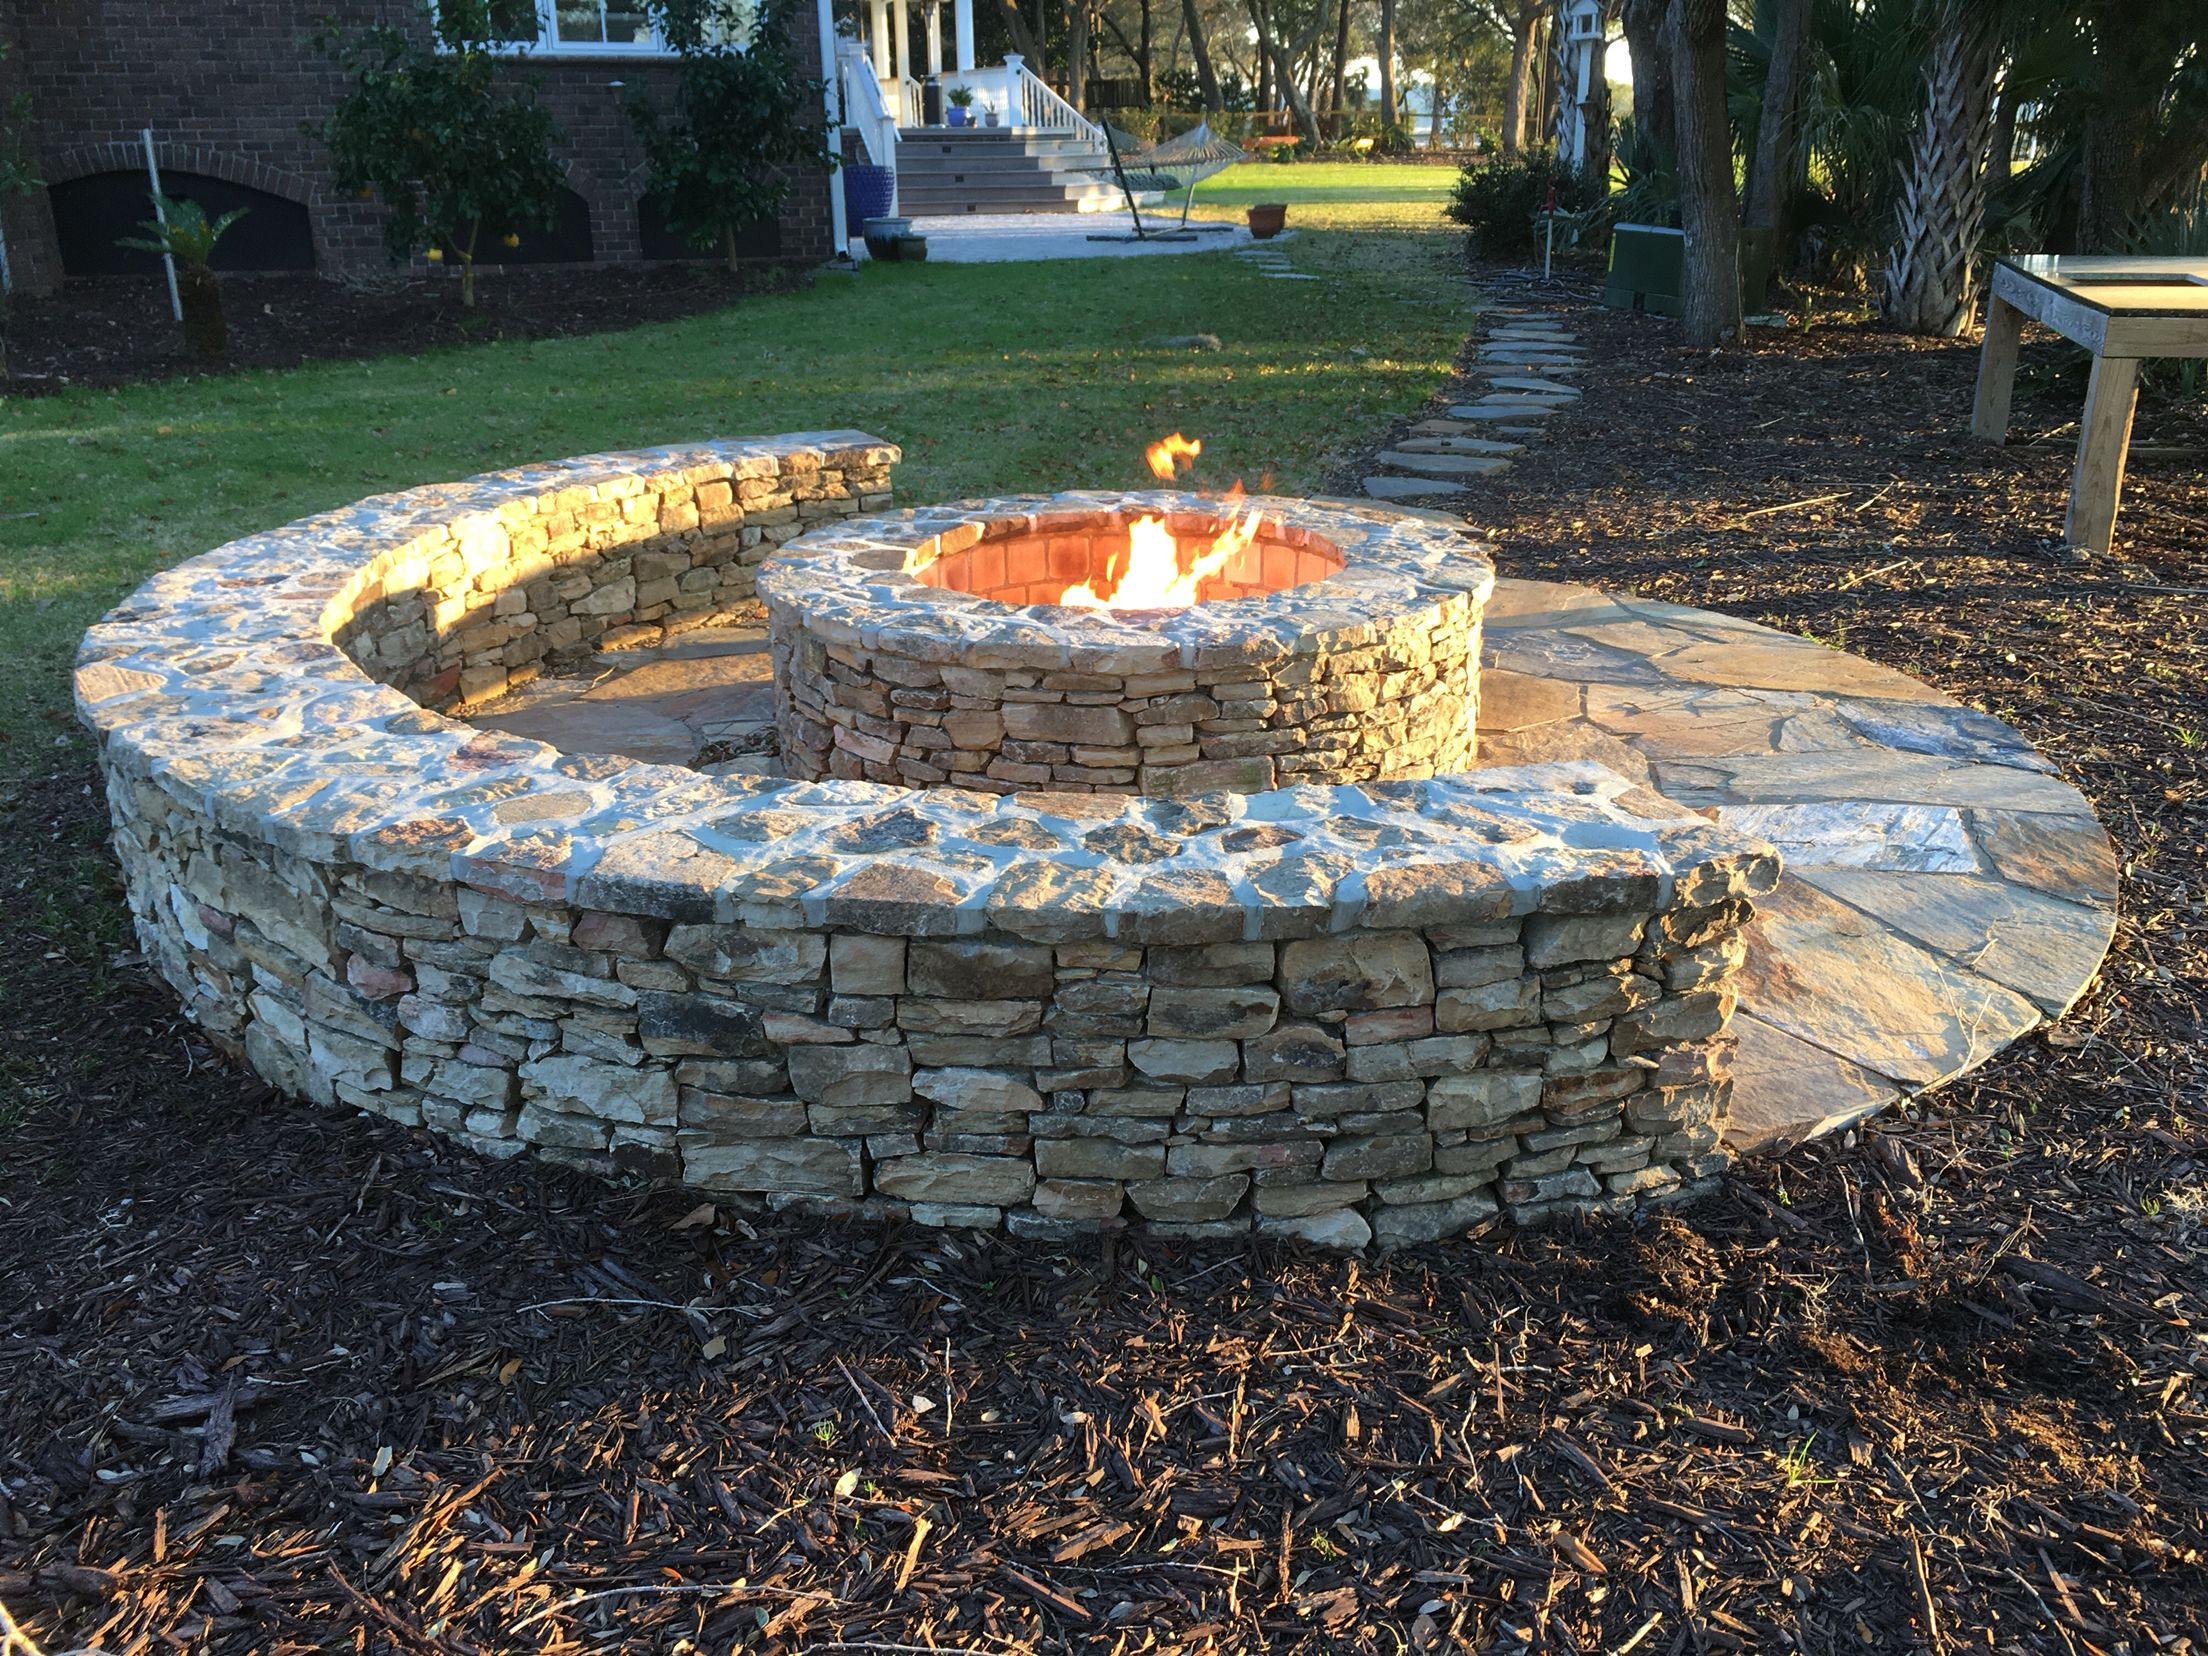 Stone fire pit designs patio traditional with artistic hardscape - Patio Plans Classic Half Moon Stone Firepit With Gas Starter